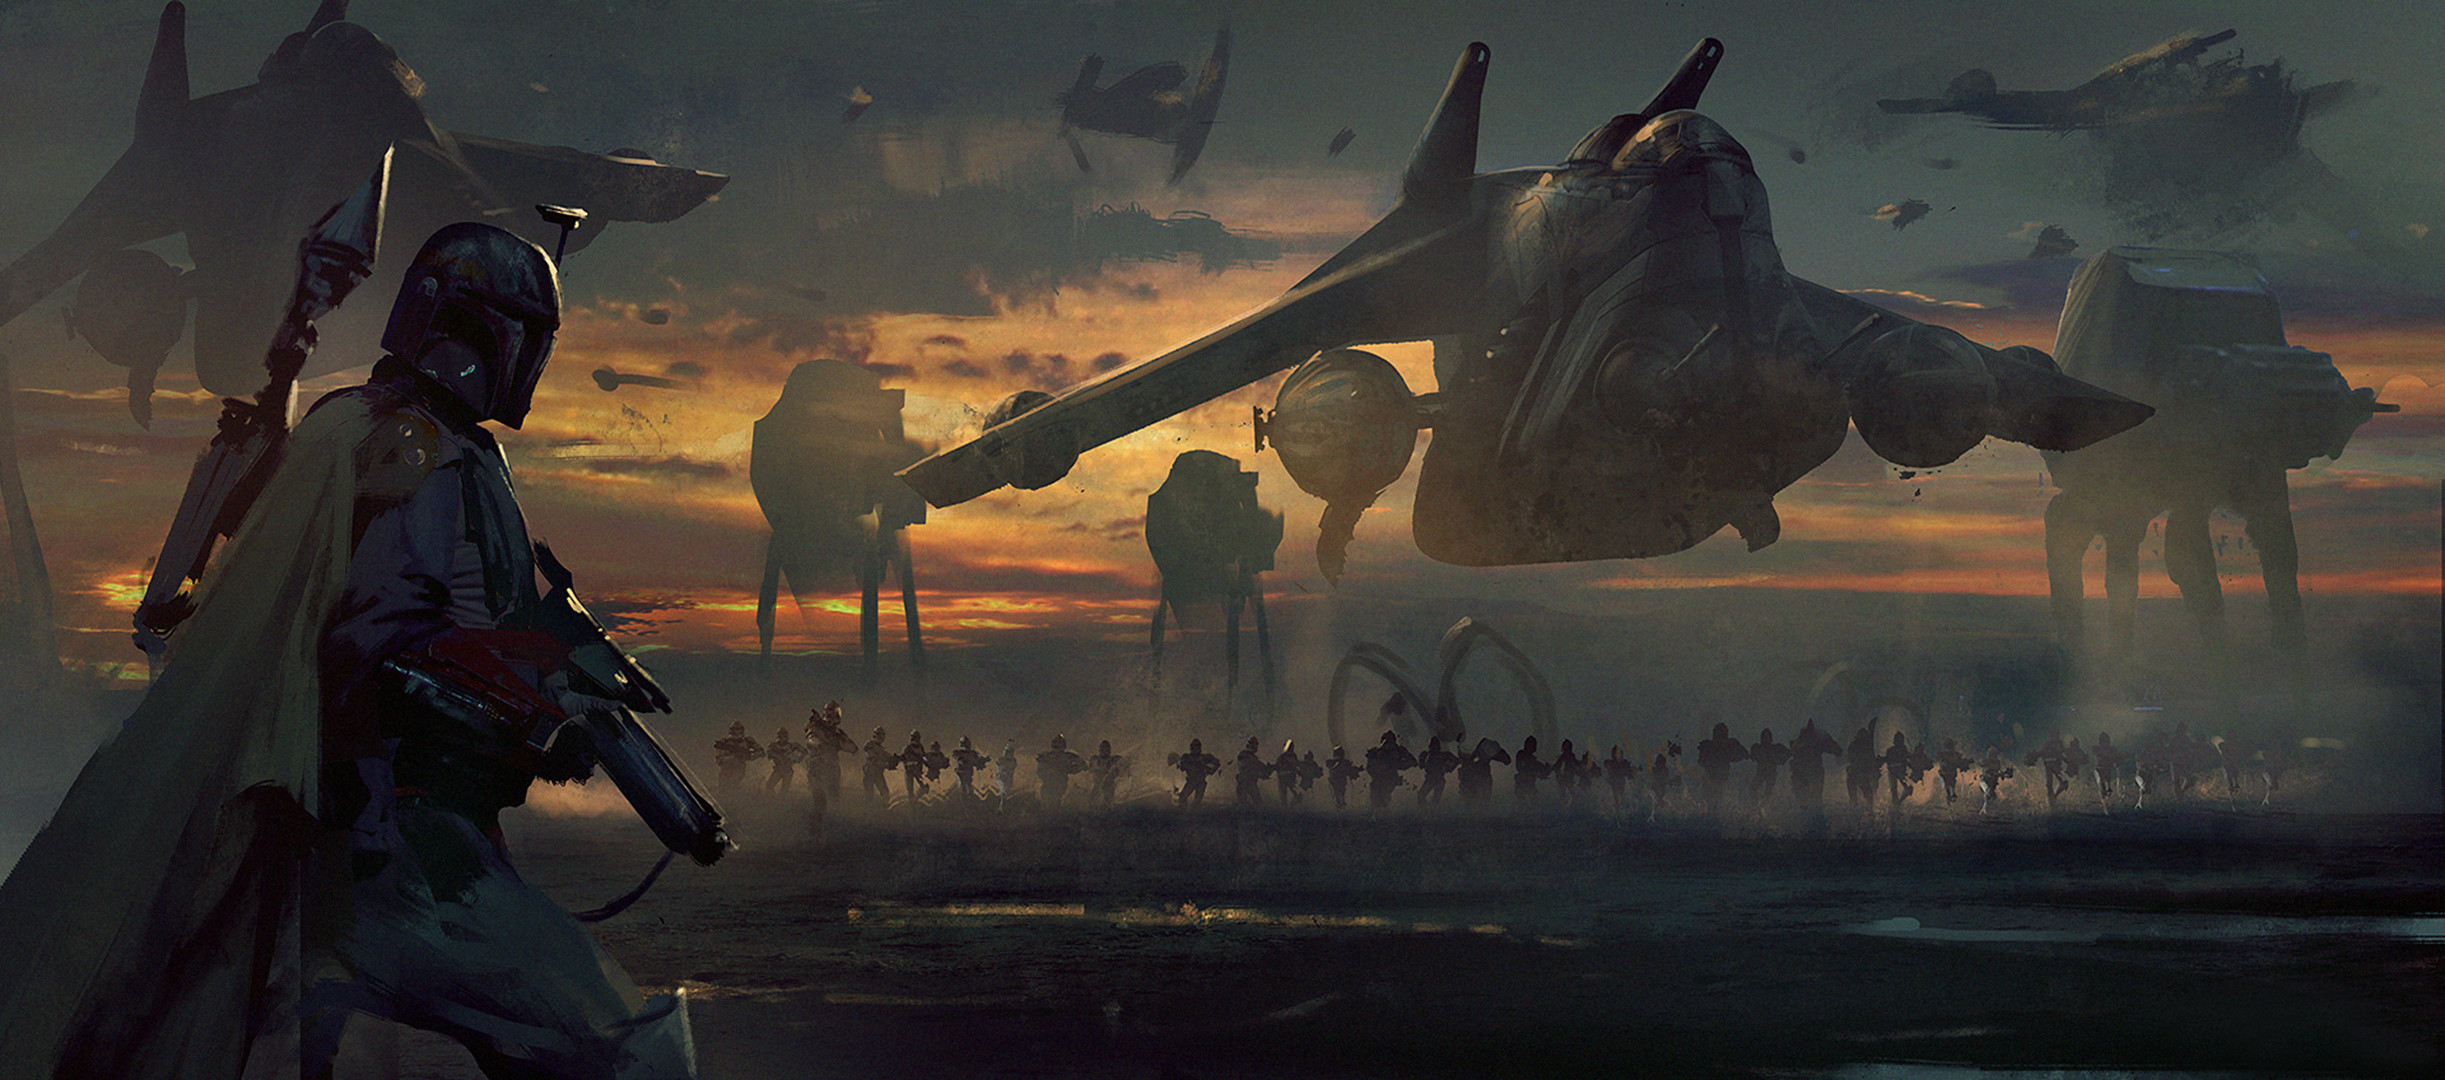 """Box cover art done for """"Between The Shadows"""" expansion set for Star Wars LCG"""